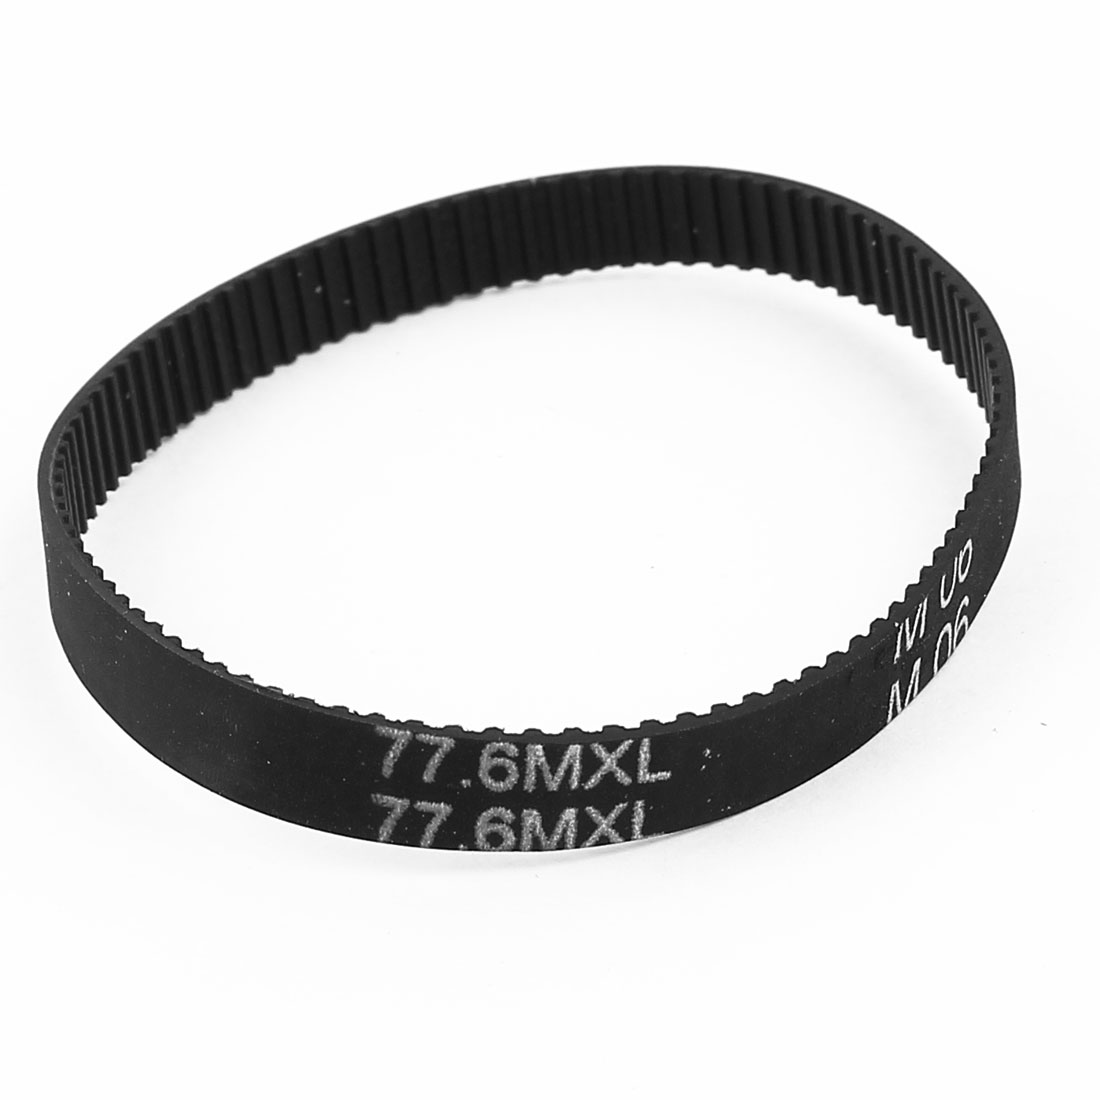 77.6MXL 025 6.4mm Width 98 Teeth 199.14mm Engine Rubber Timing Belt